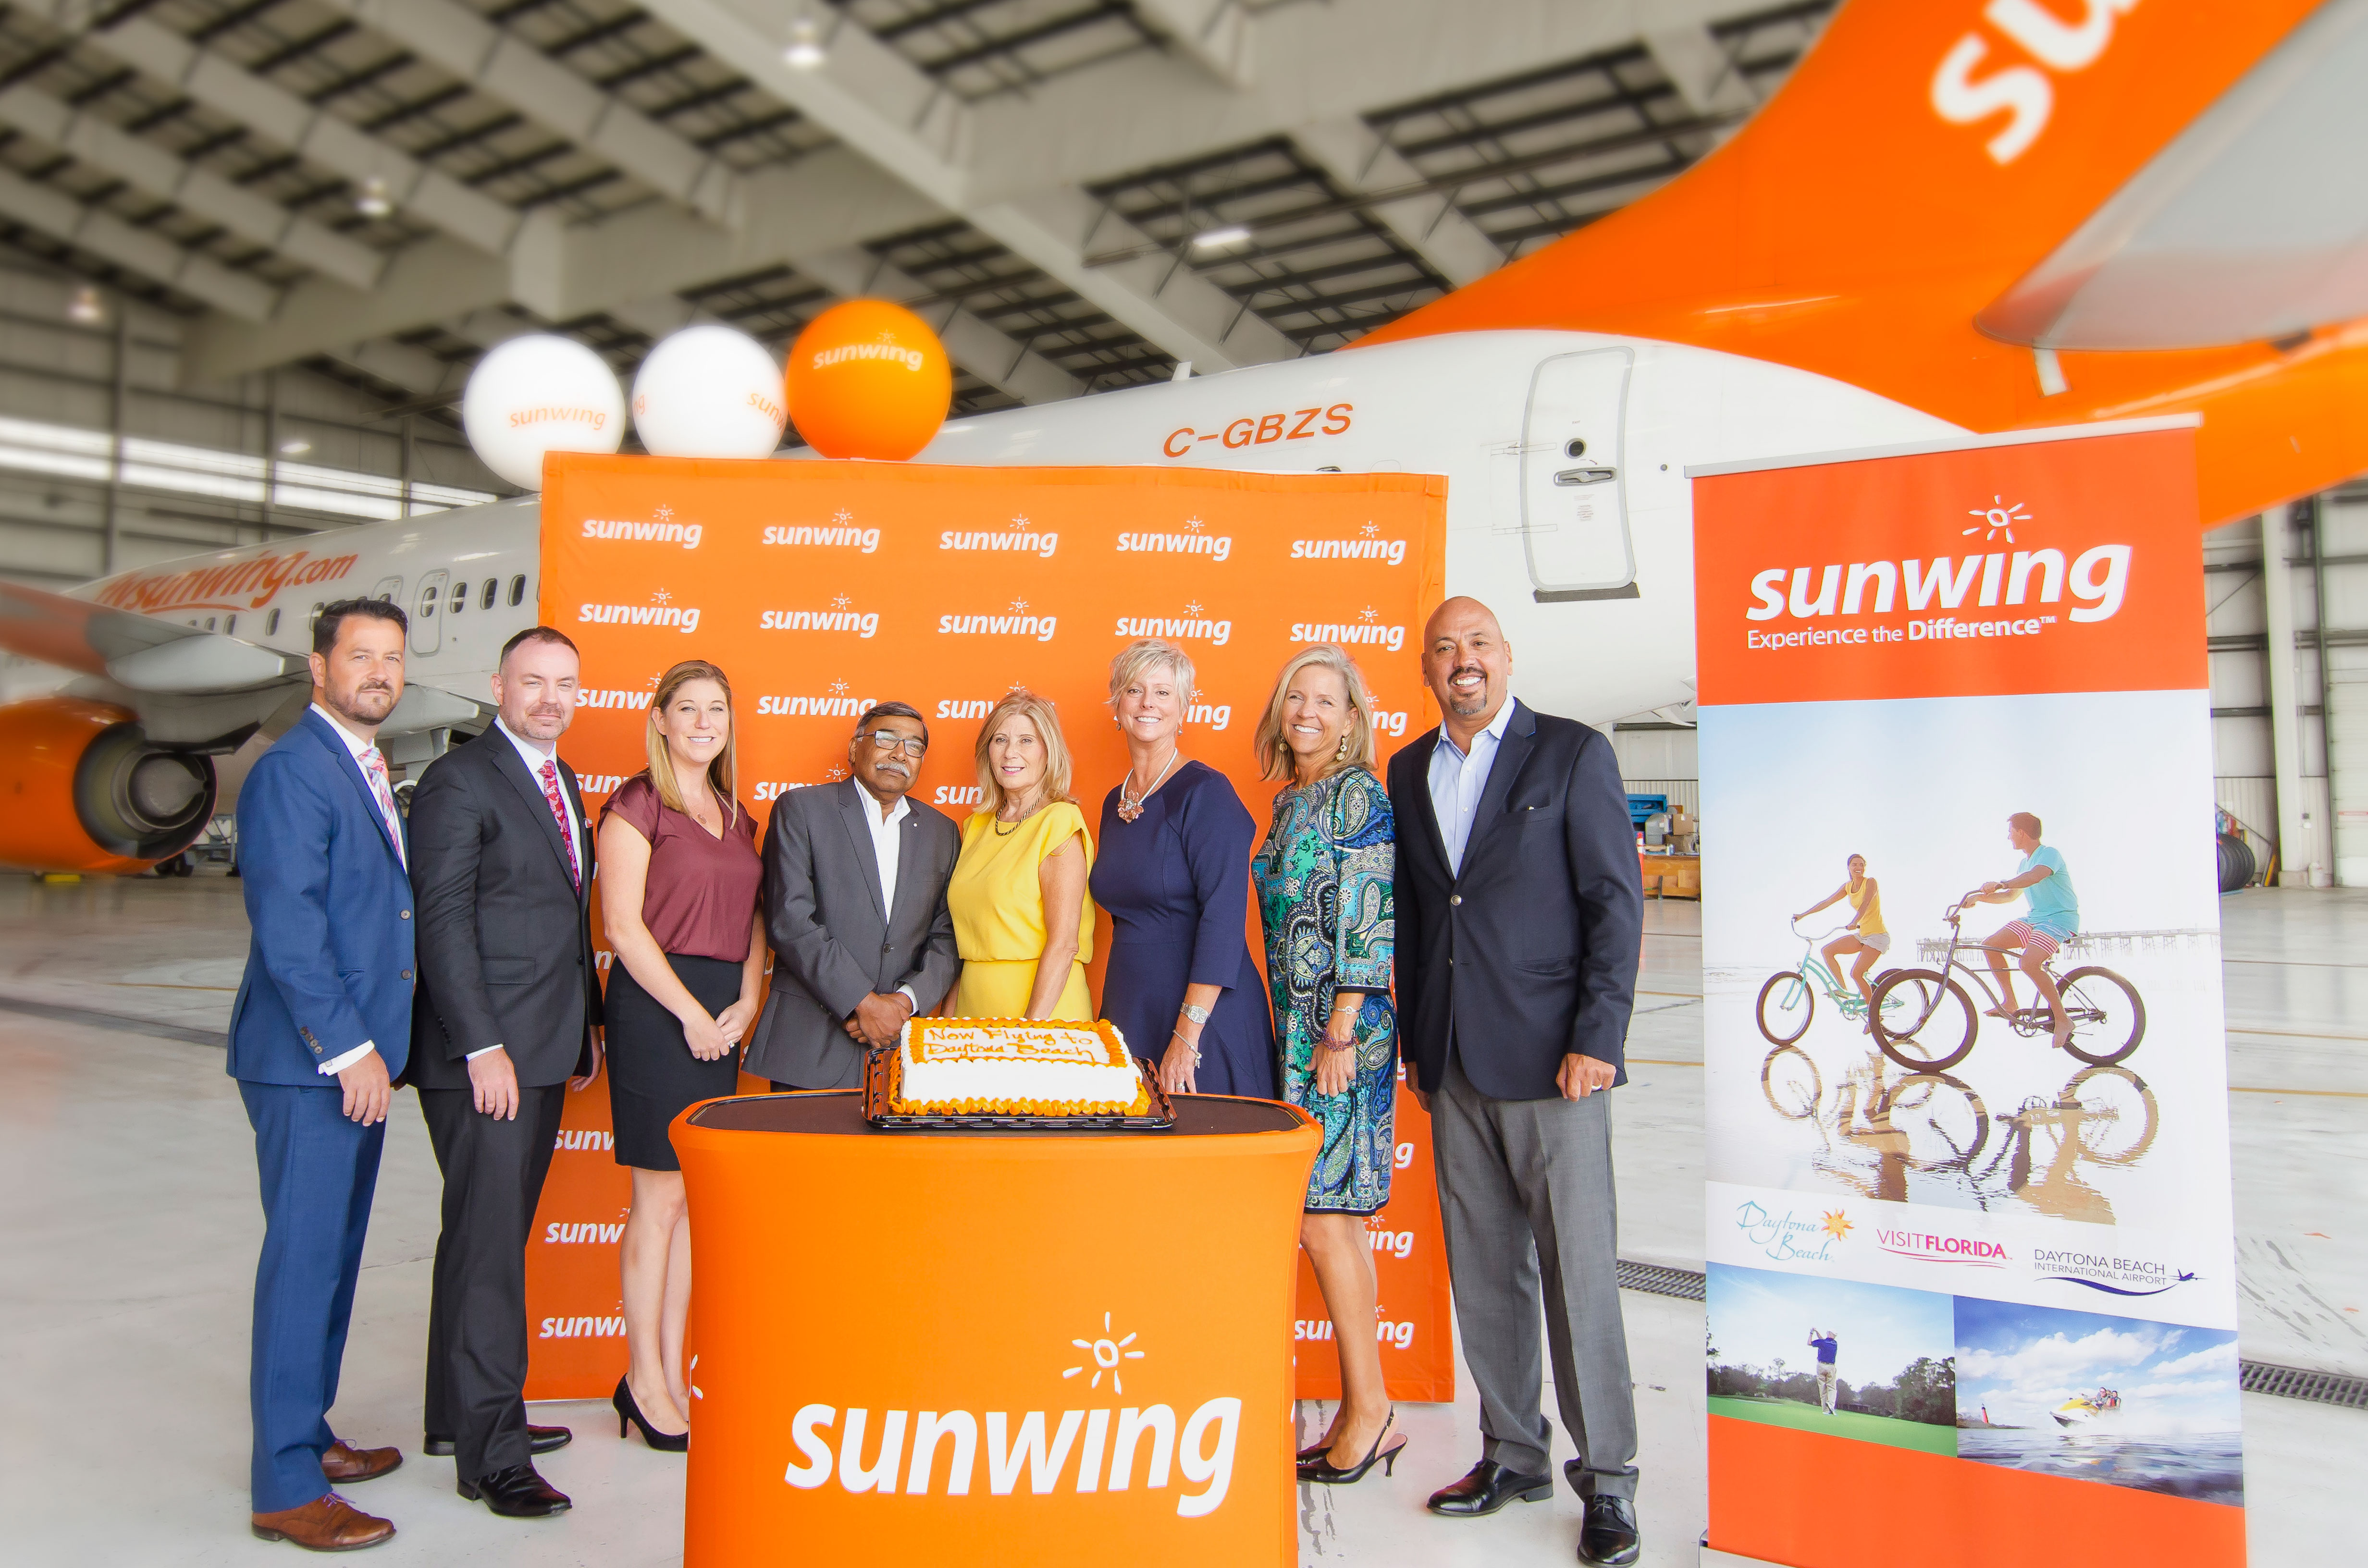 Sunwing flights to Daytona